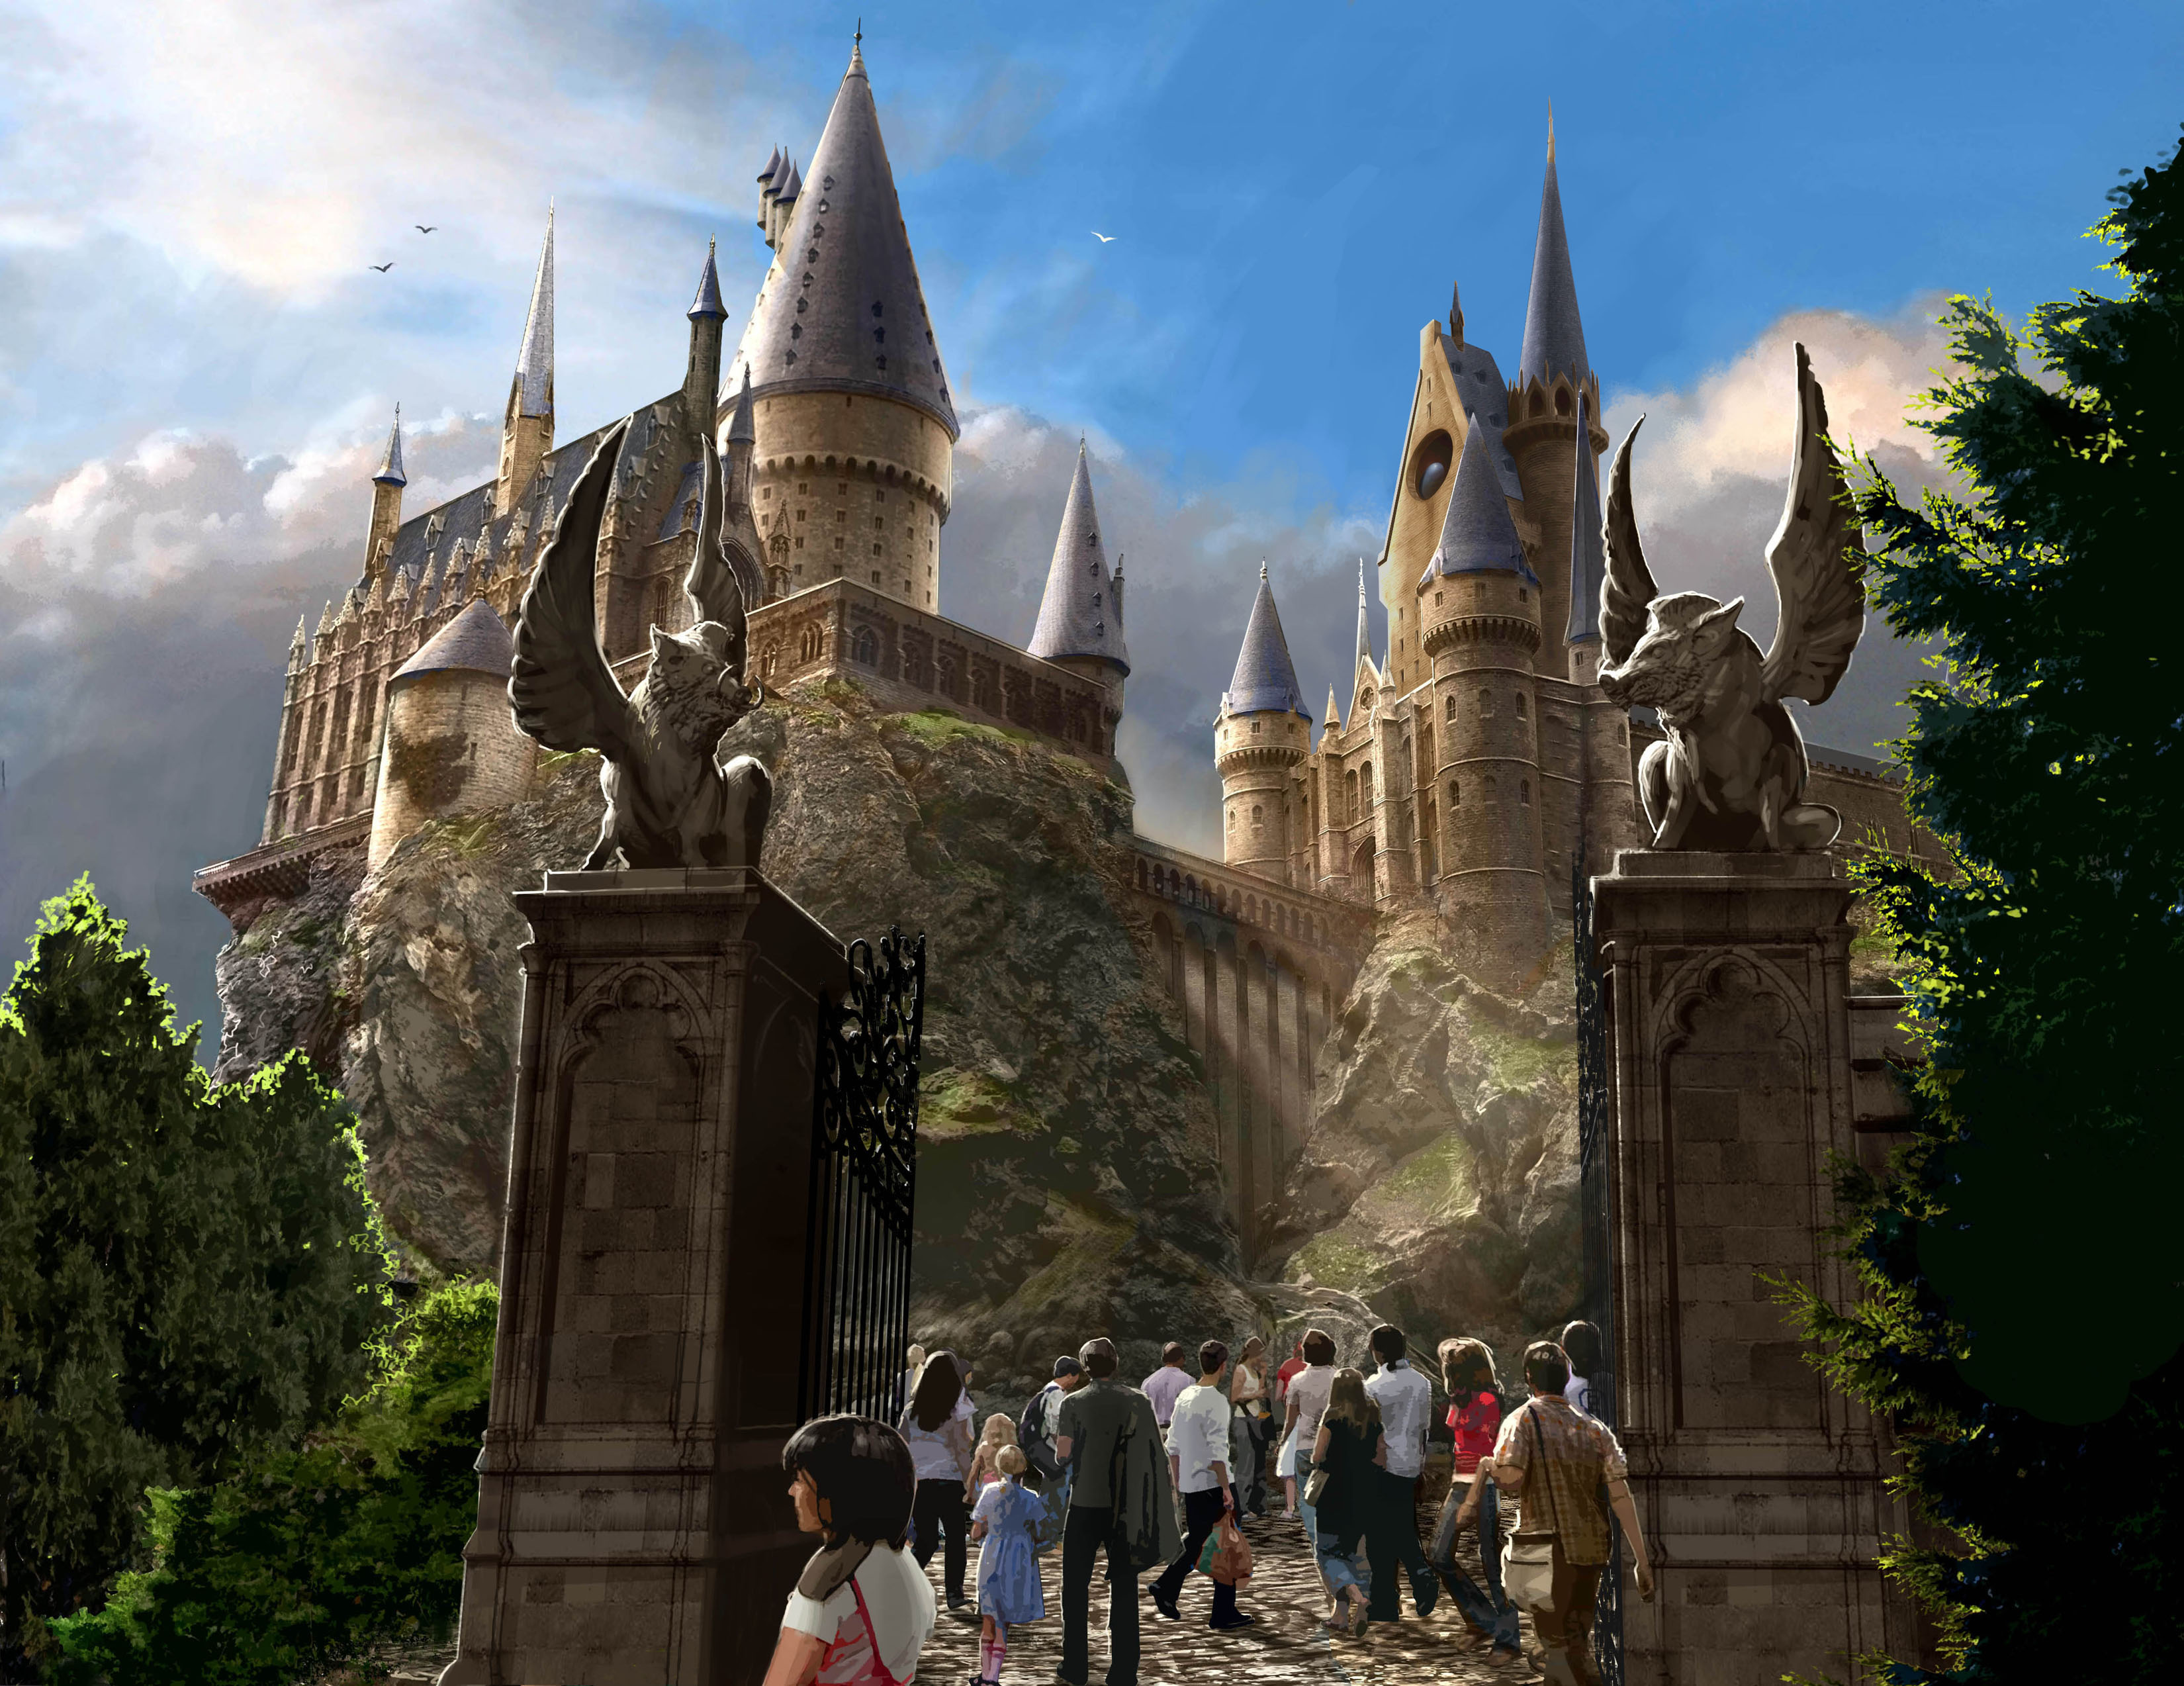 For Attractions Universal Confirmed That Hogwarts Castle Would House A Dark Ride Robocoaster Titled Harry Potter And The Forbidden Journey